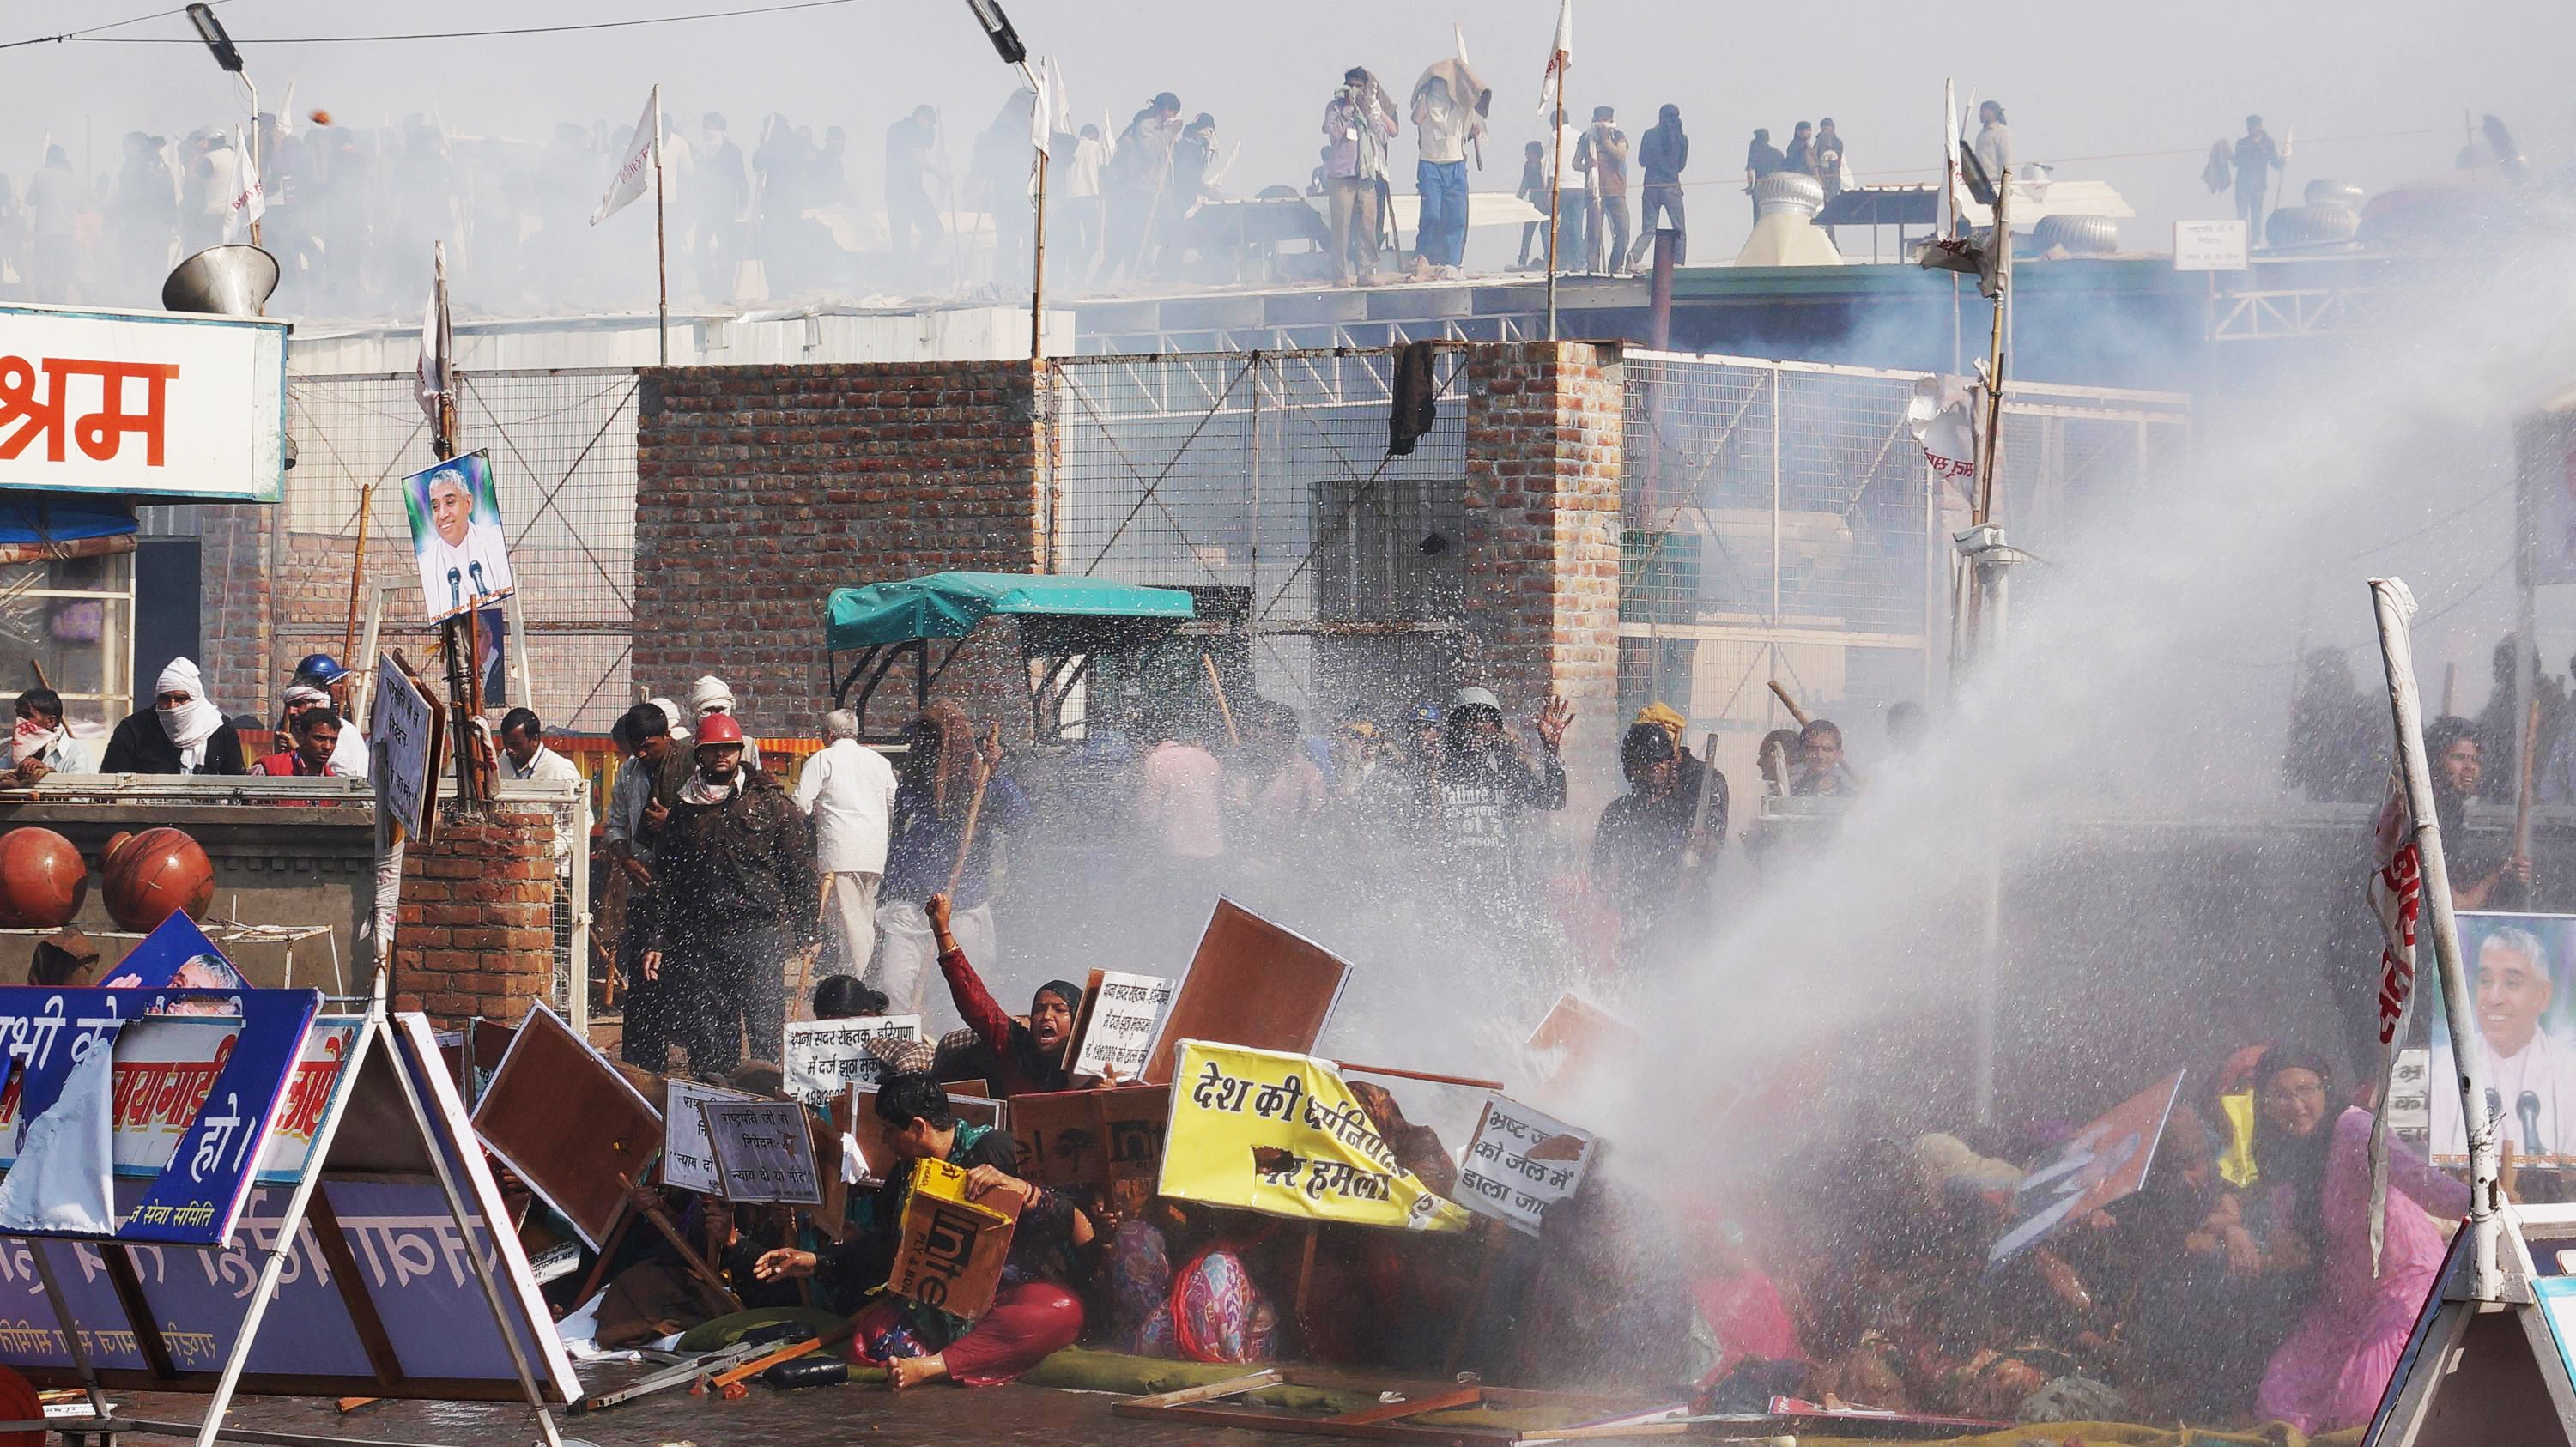 Supporters try to resist police water cannon as police storm the ashram of controversial Indian guru Sant Rampal, in search of him at Hisar in Haryana state, India, Tuesday, Nov.18, 2014.